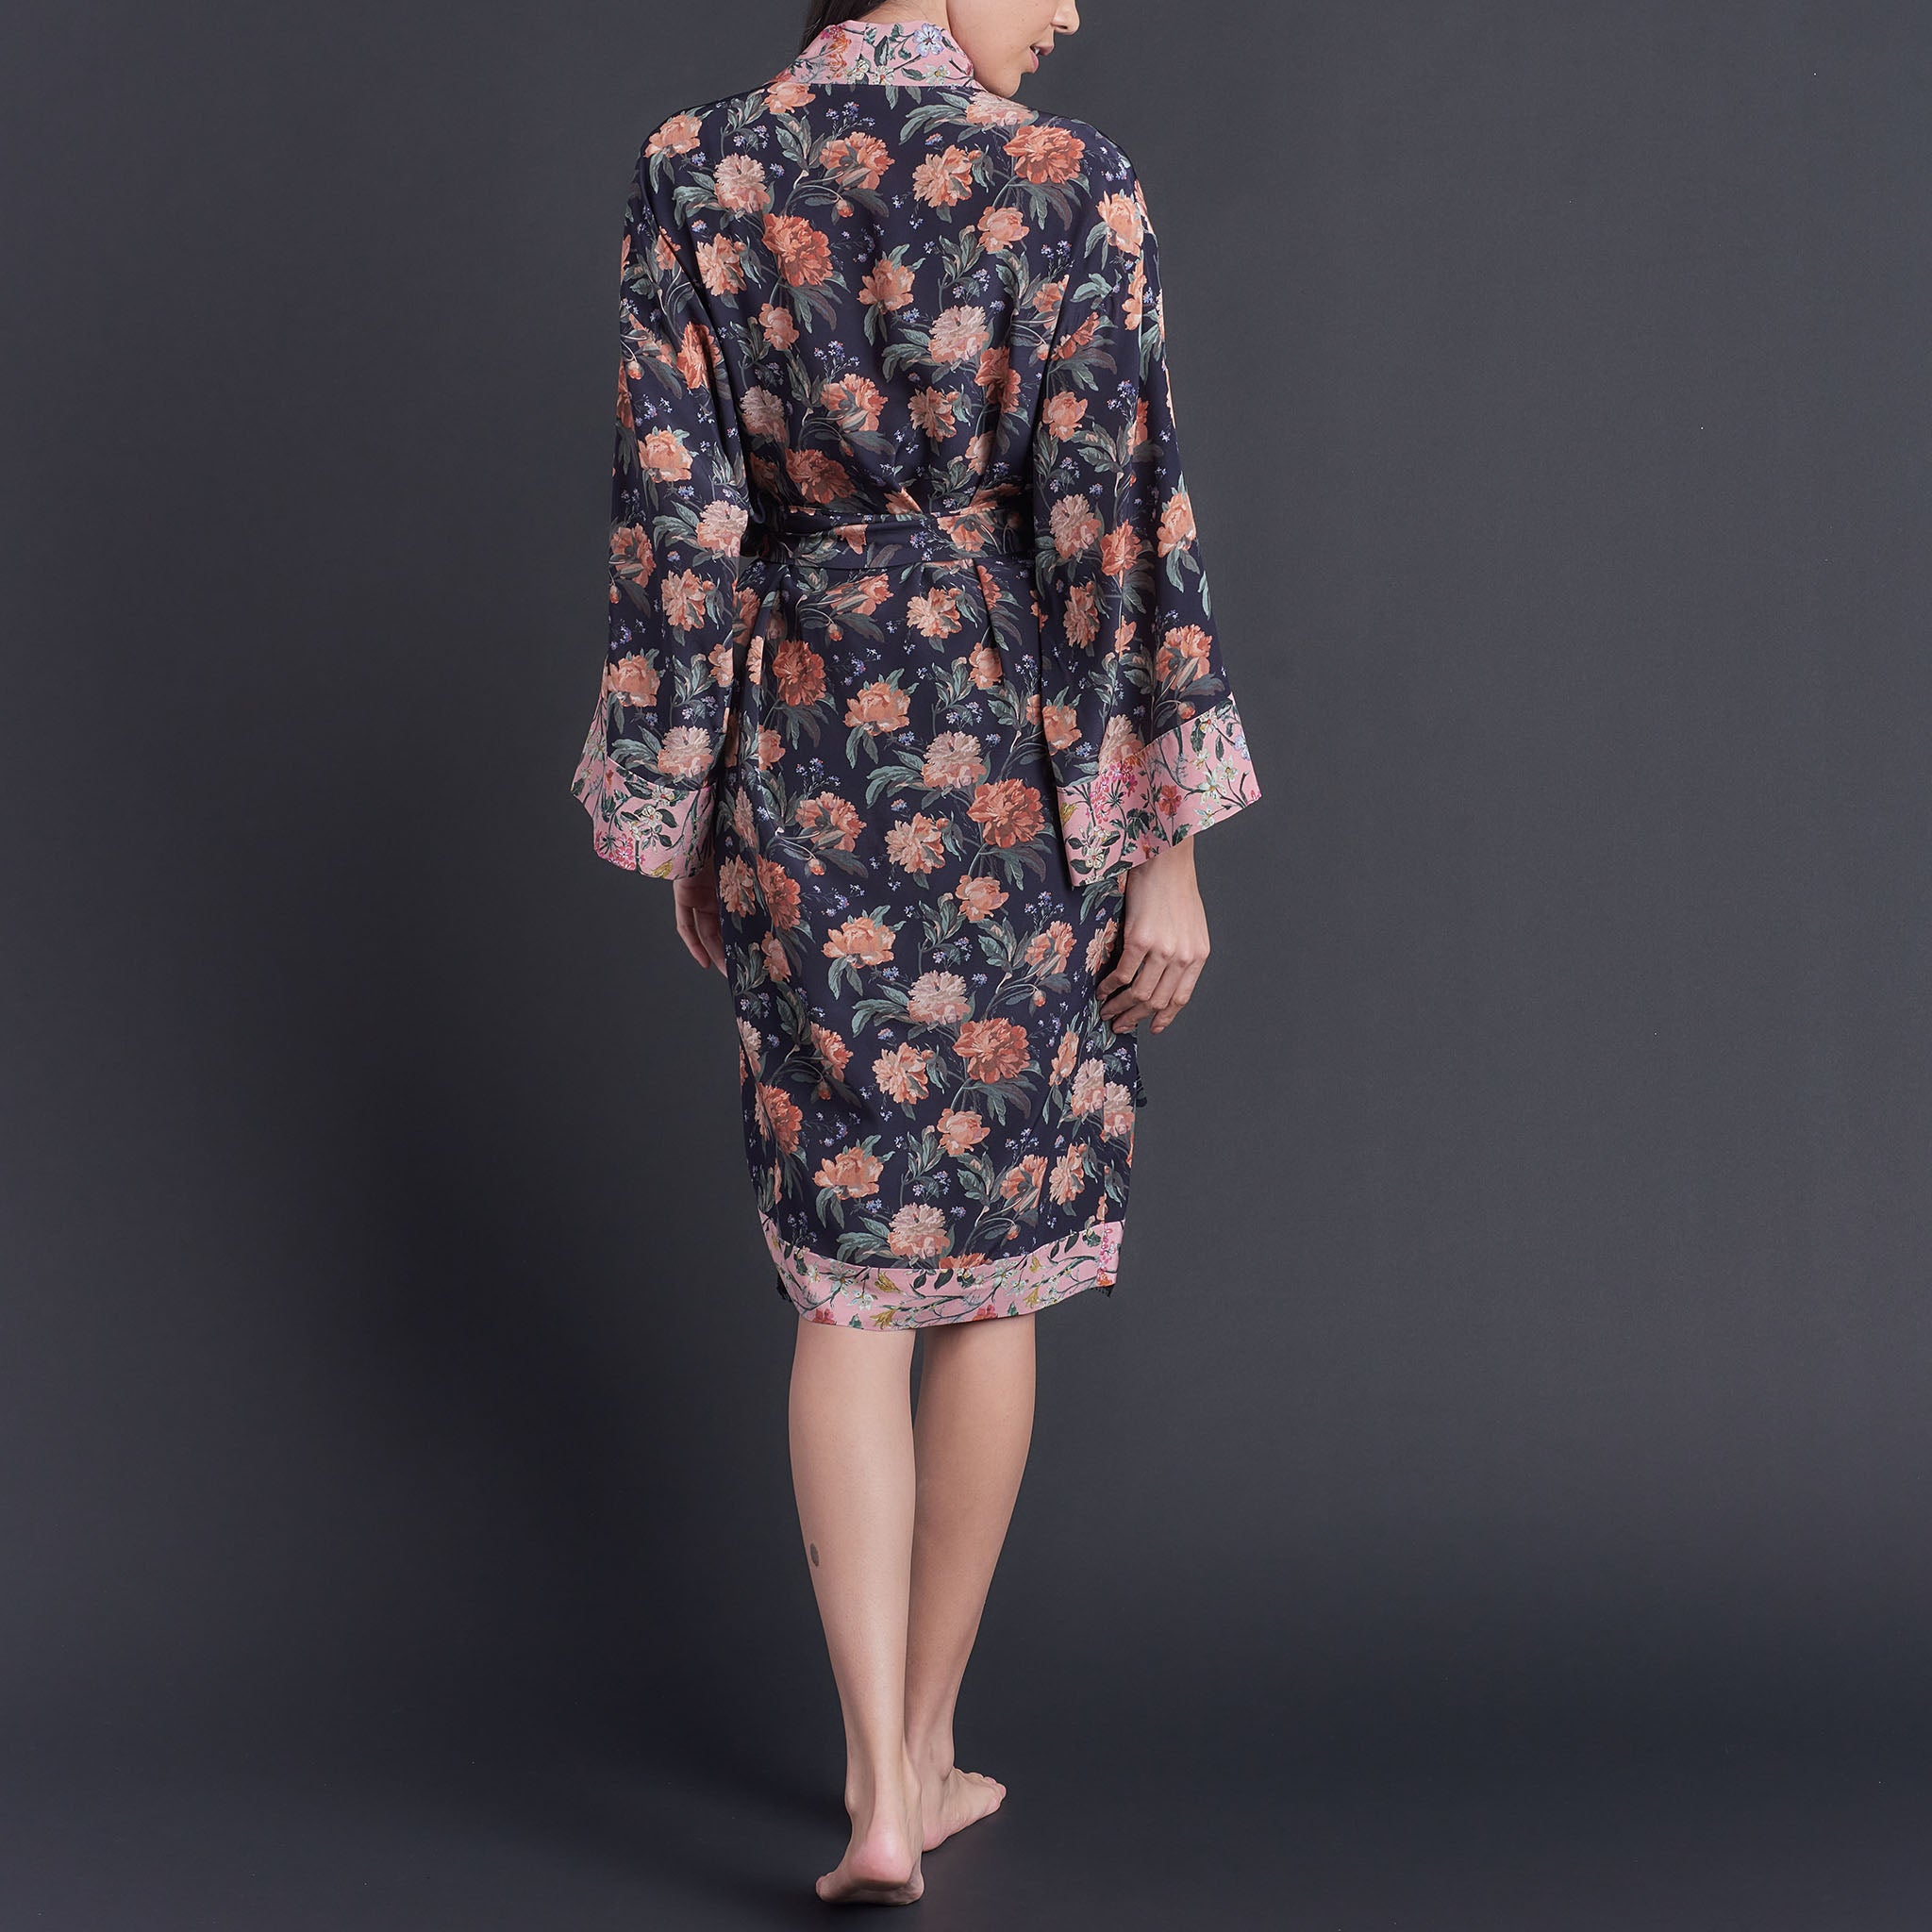 One of a Kind Selene Dressing Gown in Decadent Dreams Liberty Print Silk Crepe De Chine